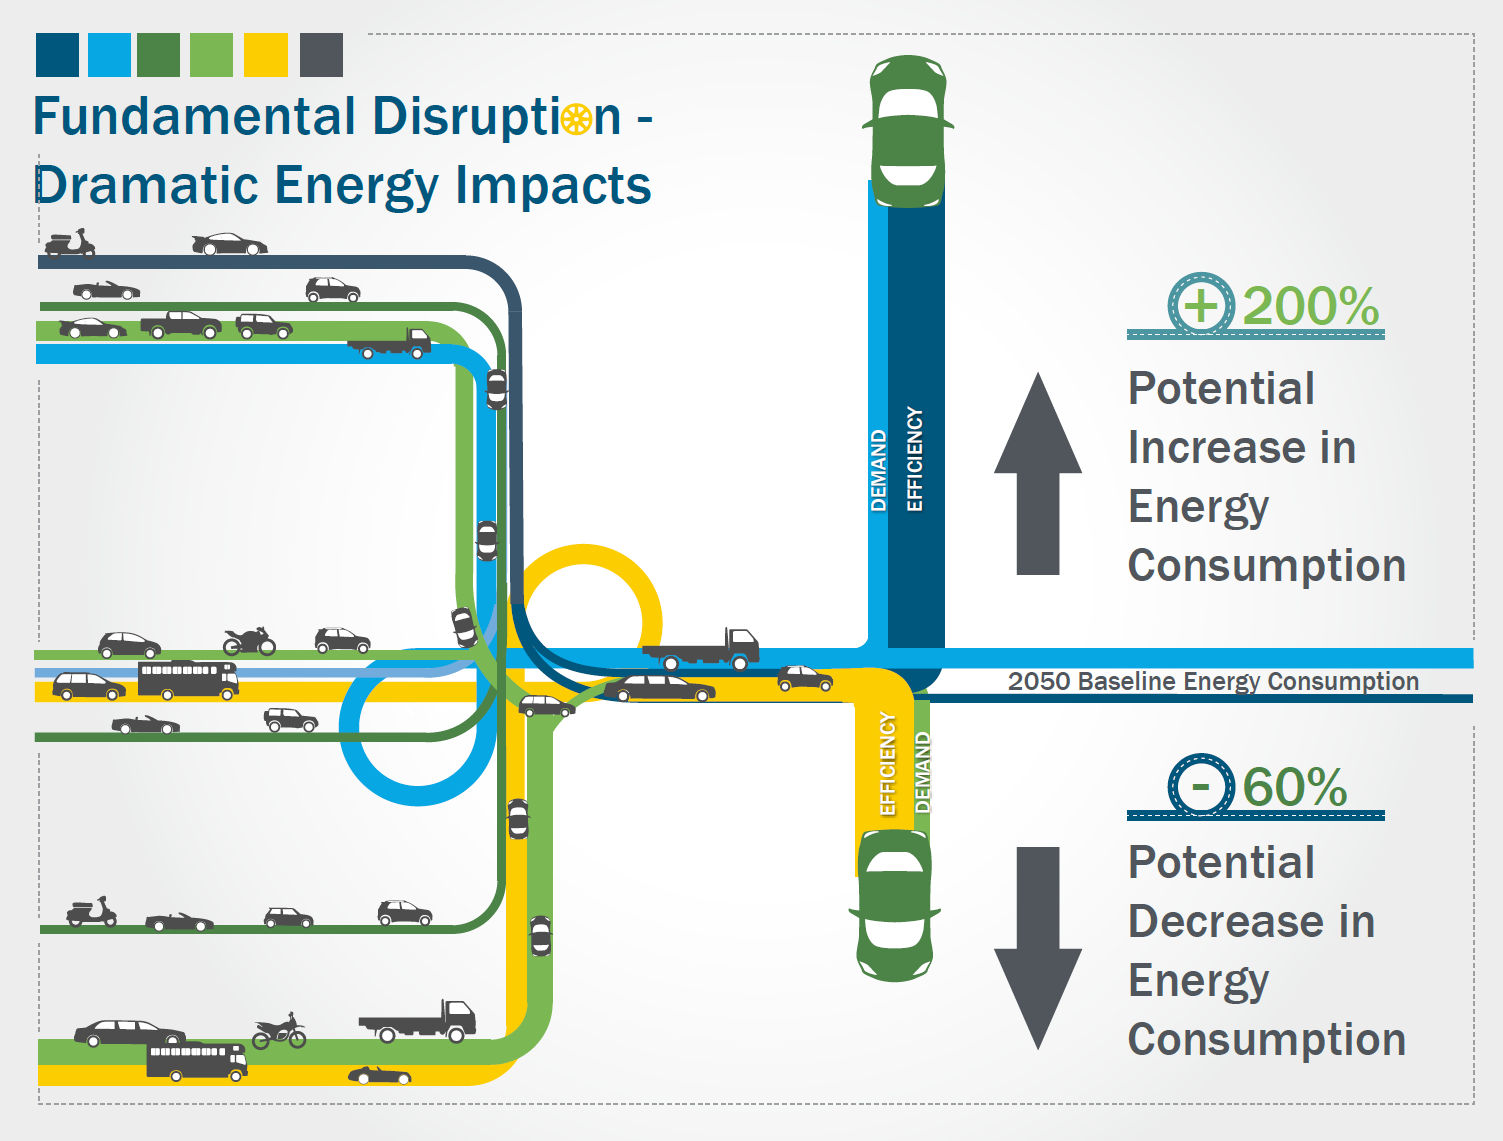 A bird's eye view graphic of vehicles traveling on multiple roads, signifying the potential energy usage scenarios that could result from new energy efficient mobility system technologies'.